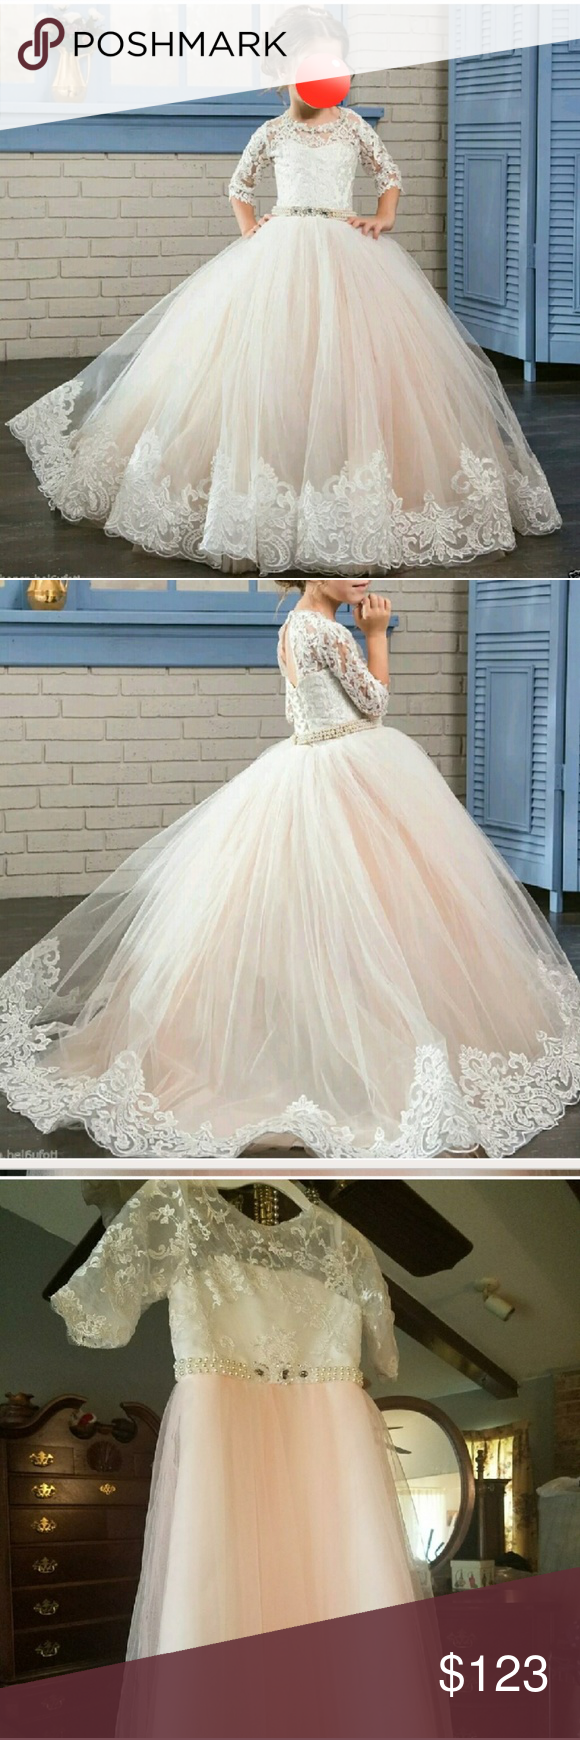 Dresses for 12 year olds for a wedding  New Princess Gown Boutique in   My Posh Closet  Pinterest